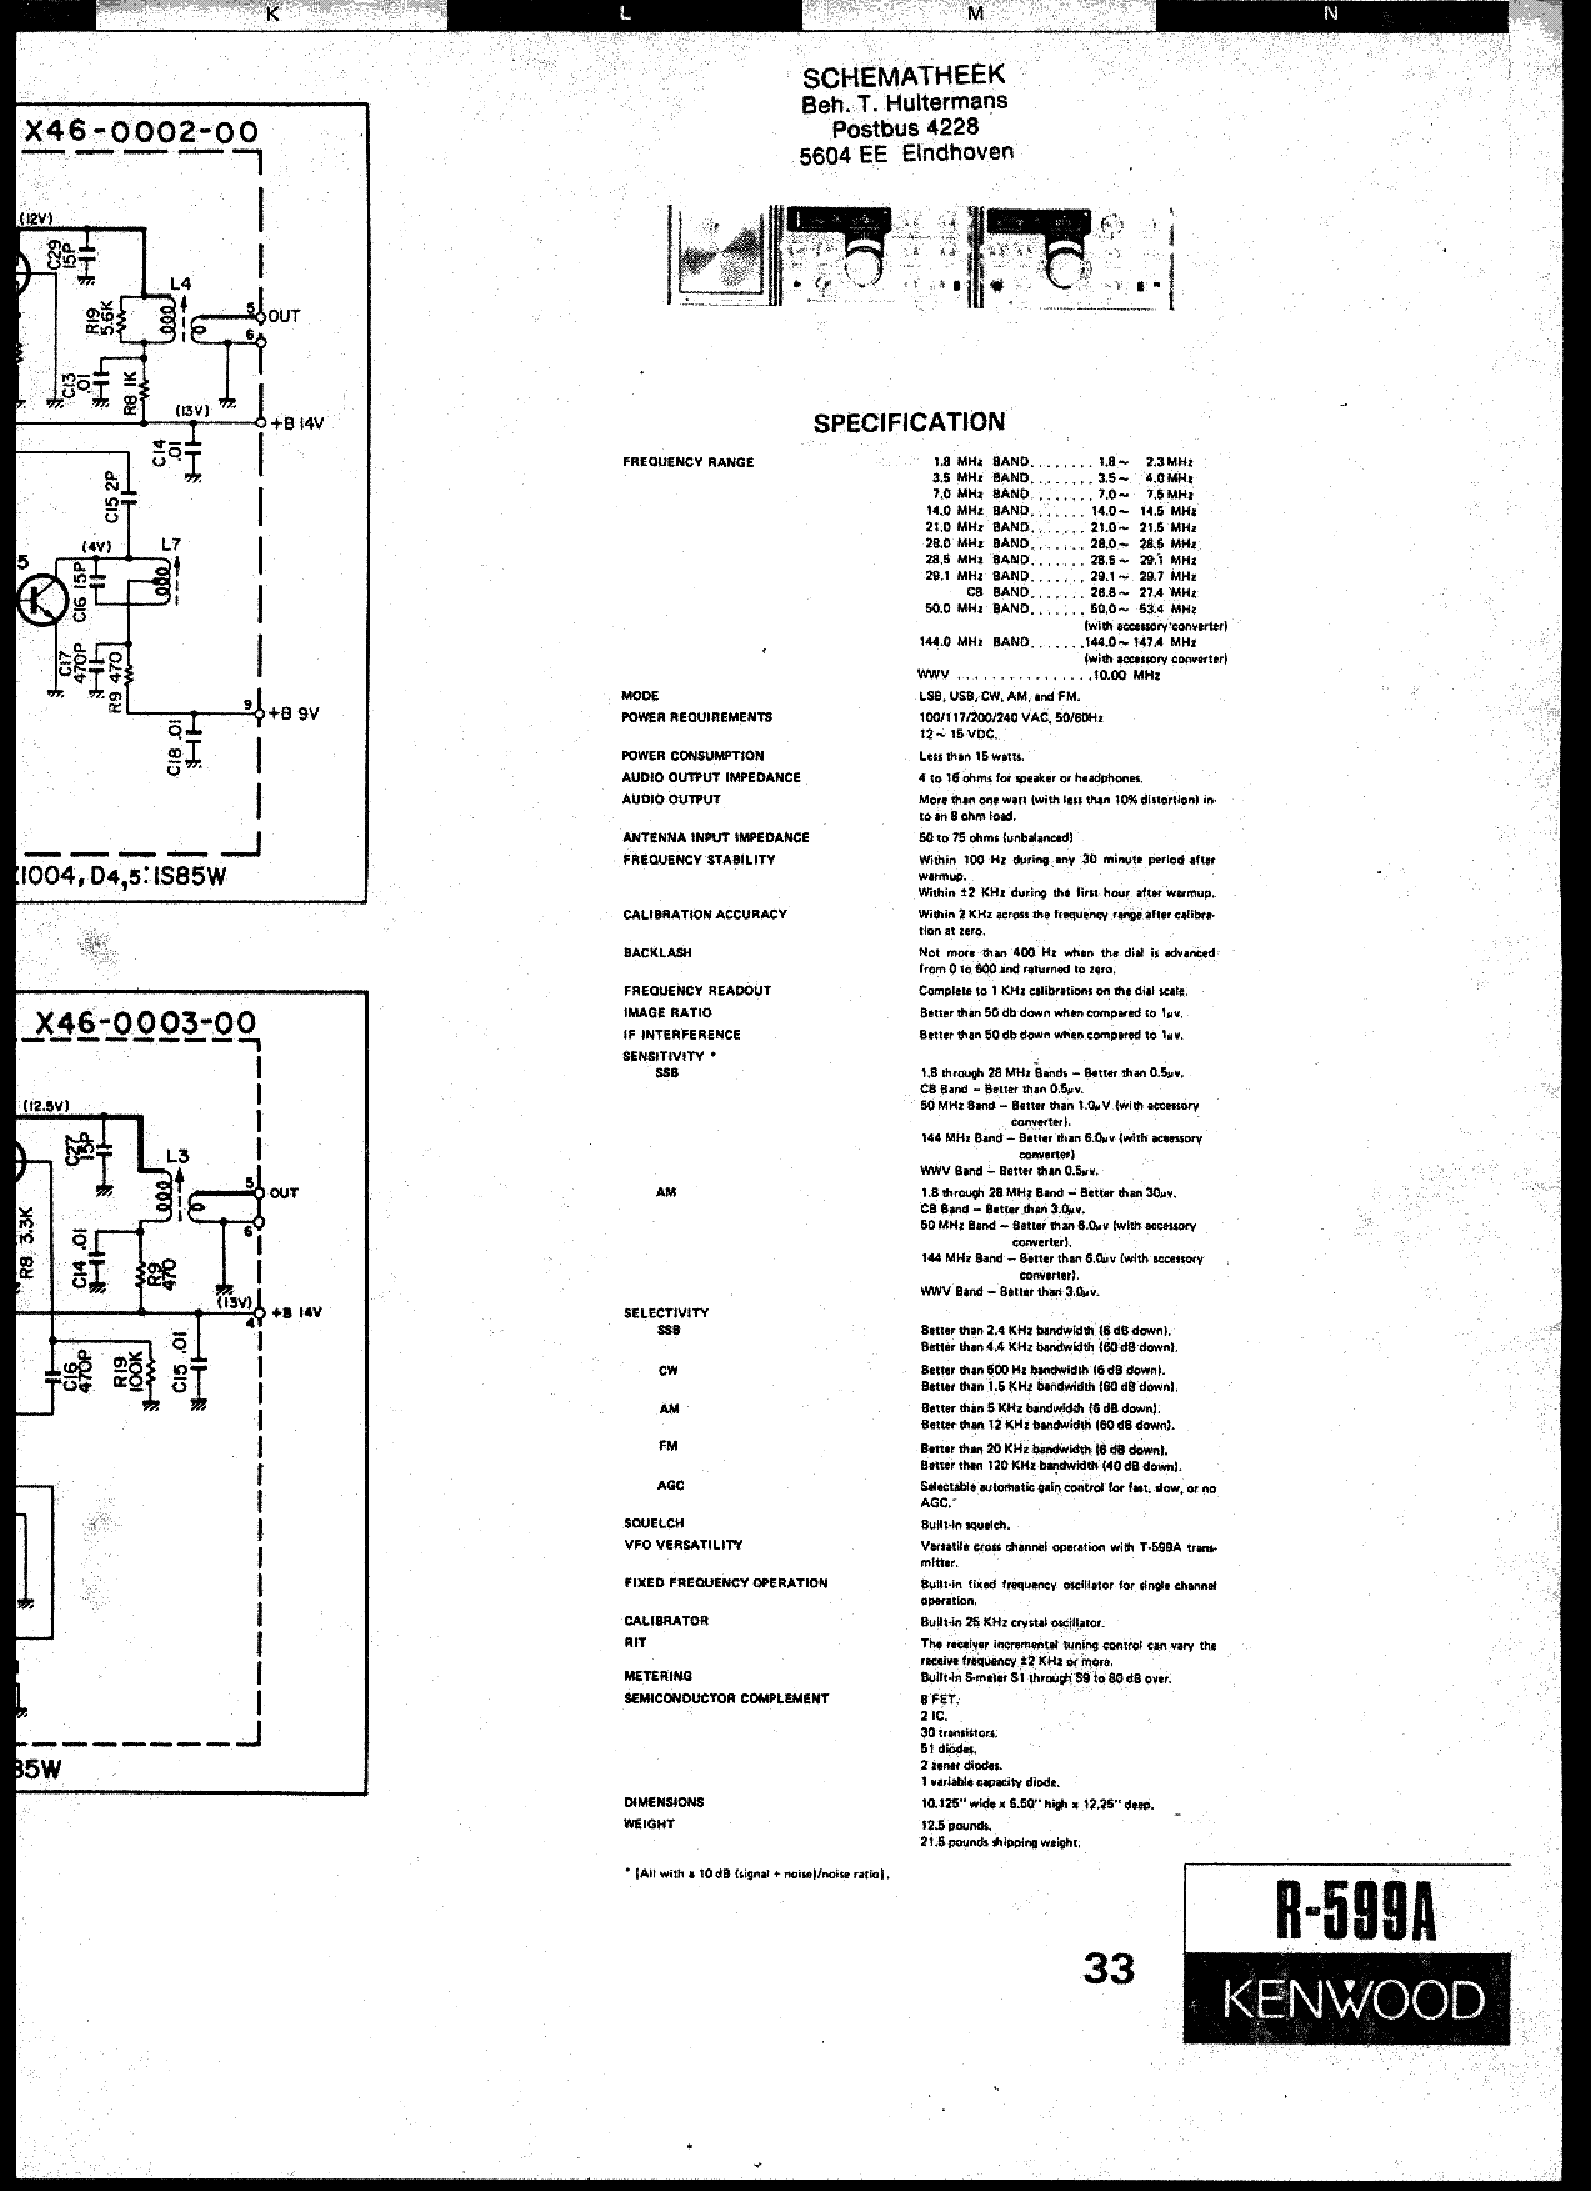 KENWOOD R-599A SCH service manual (1st page)